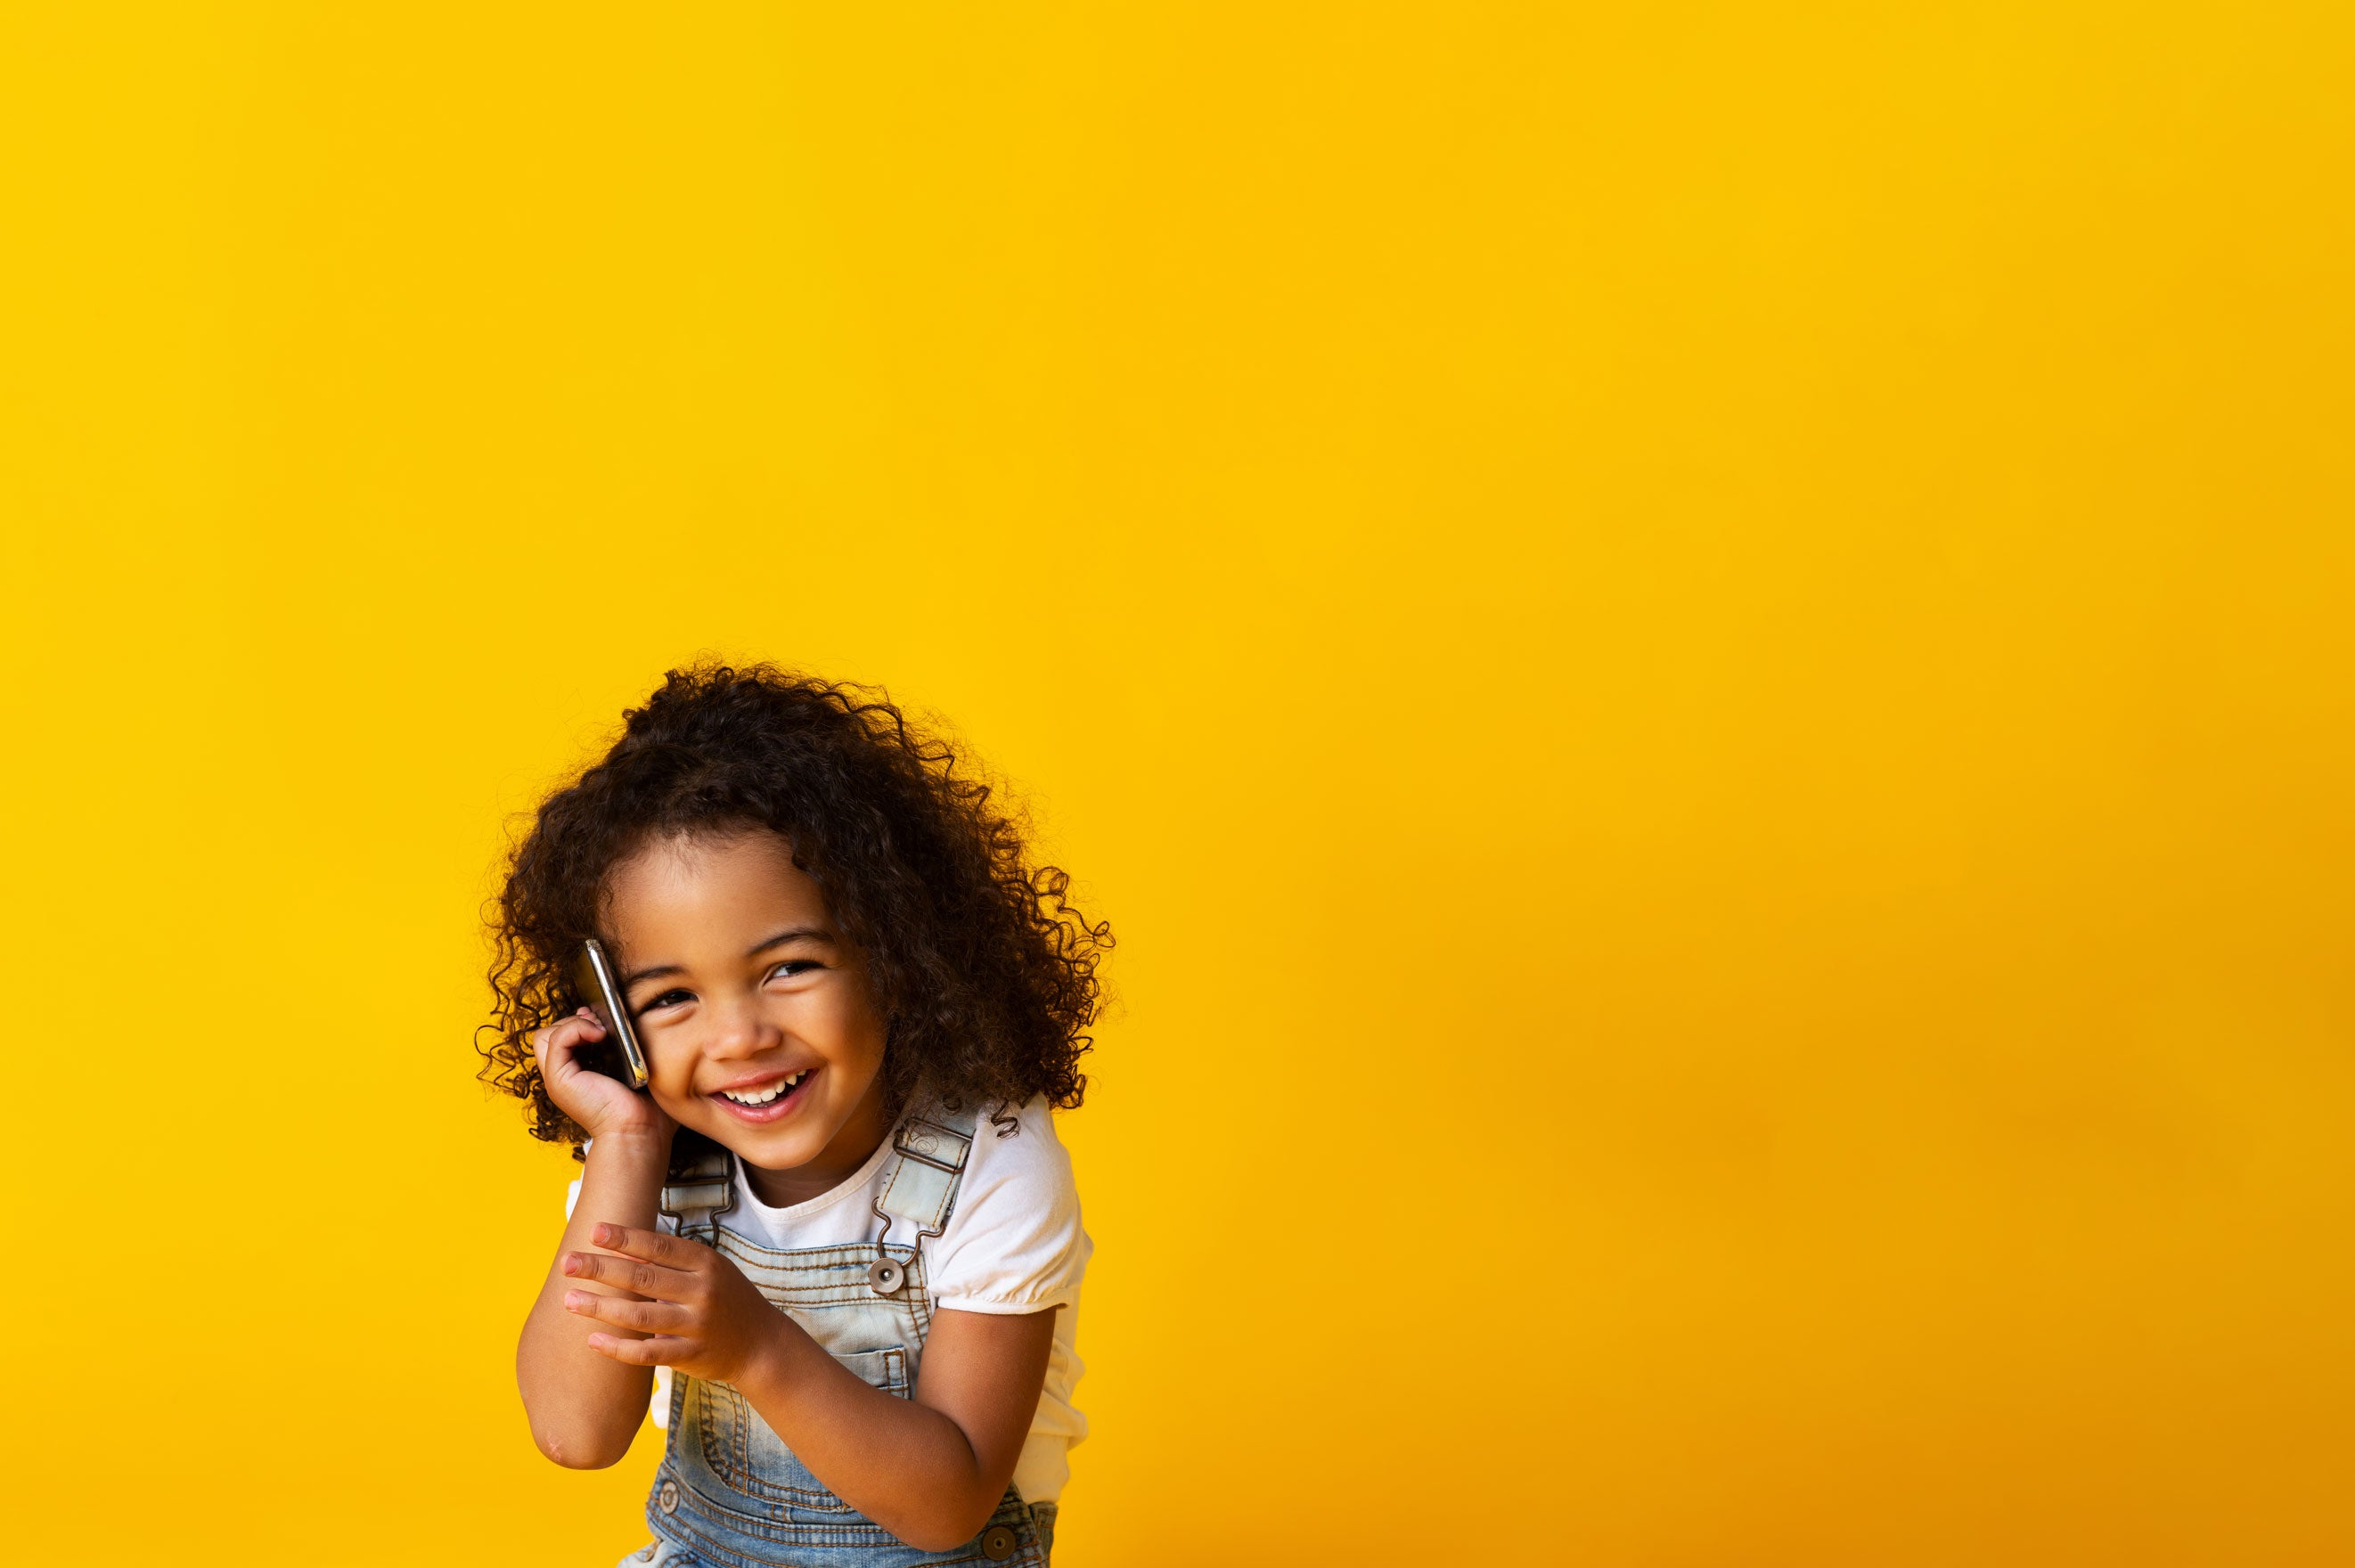 child with curly hair wearing suspenders smiling and holding smartphone to her ear against a yellow background